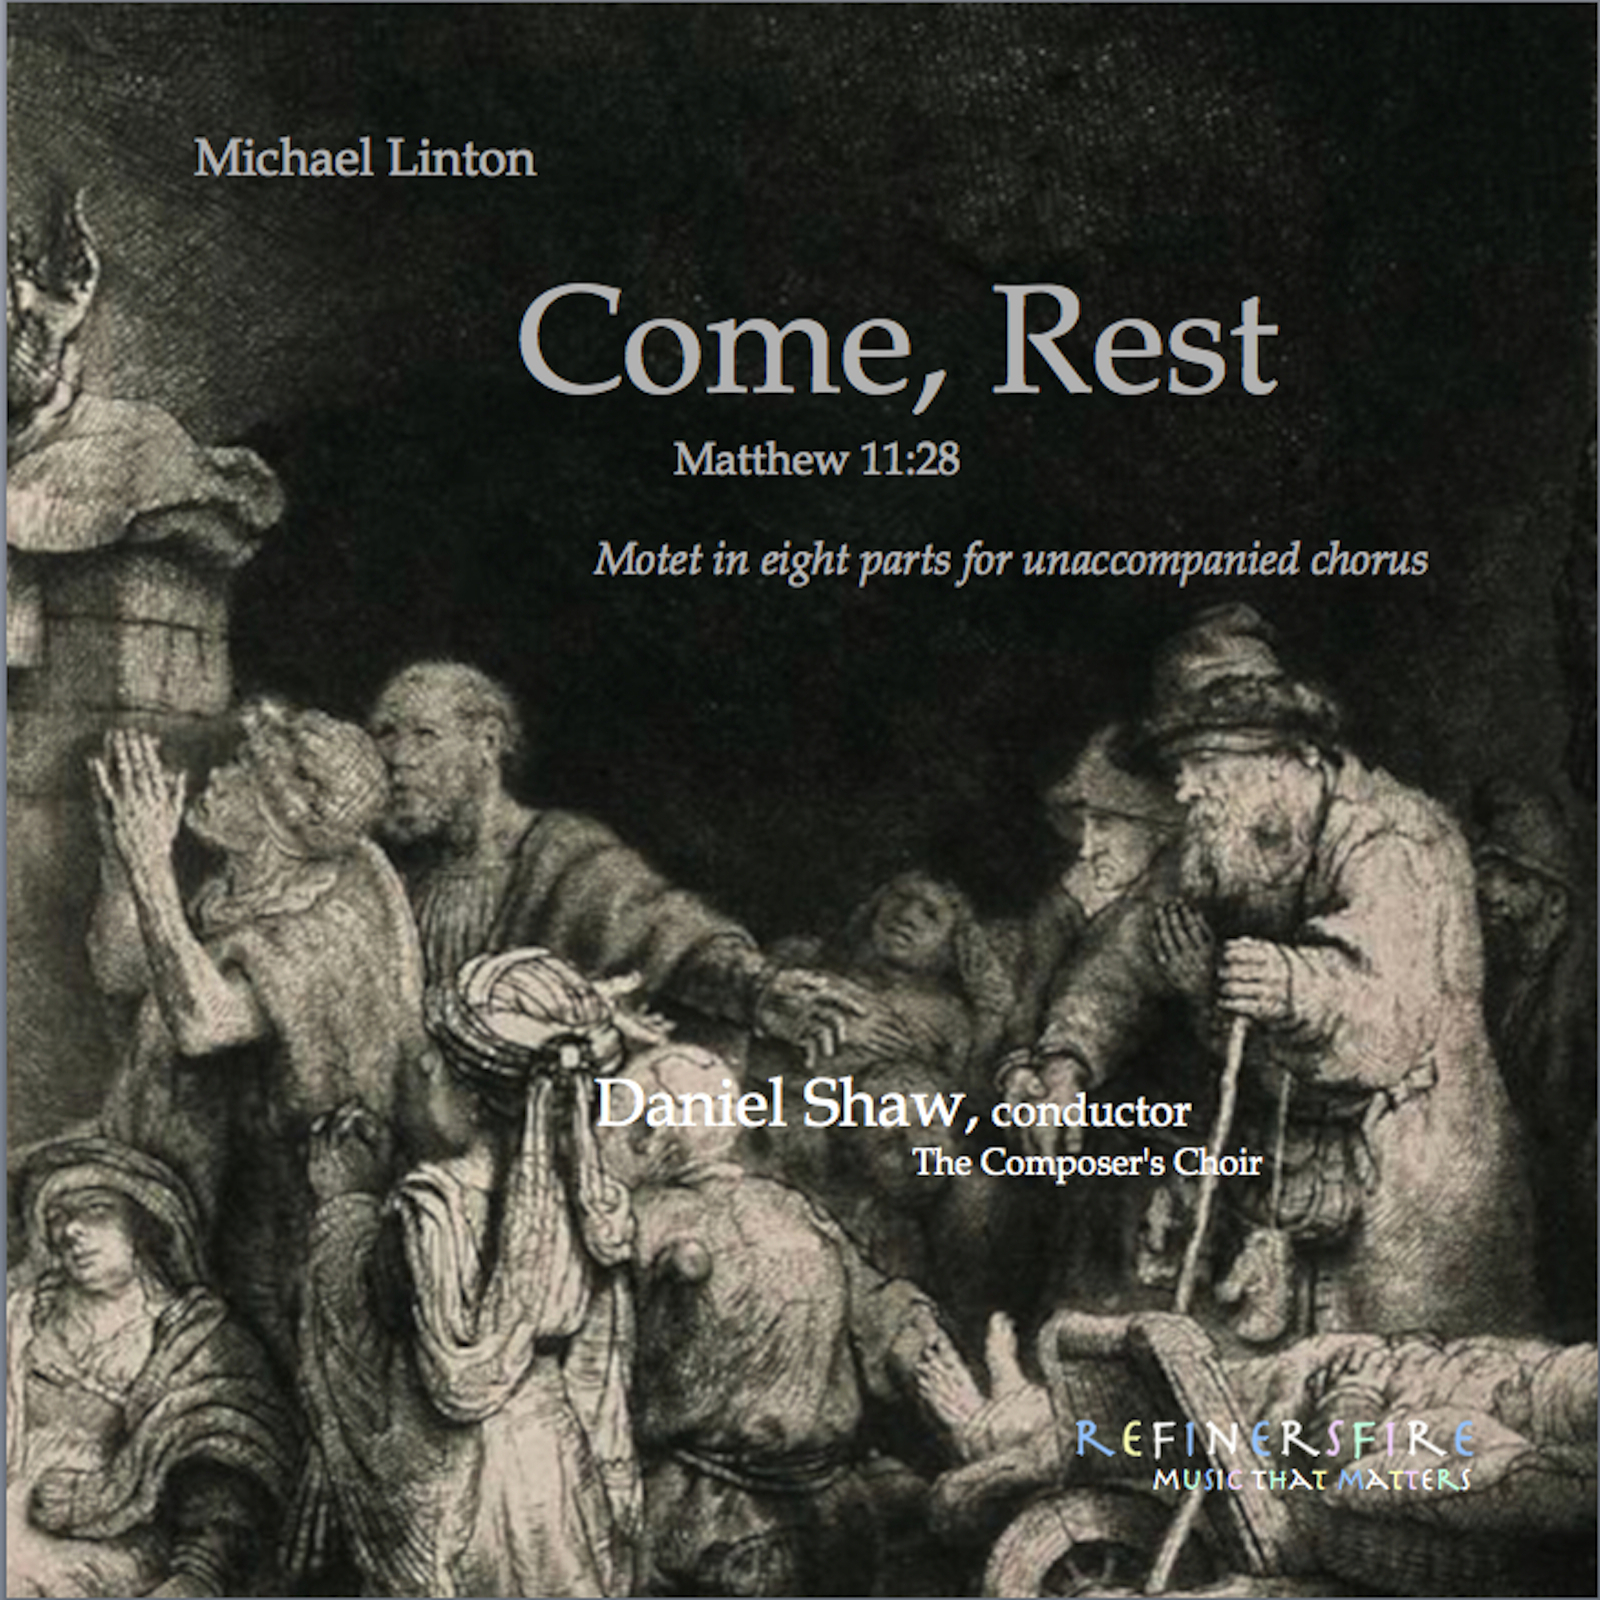 Come, Rest Cover_1a.jpg